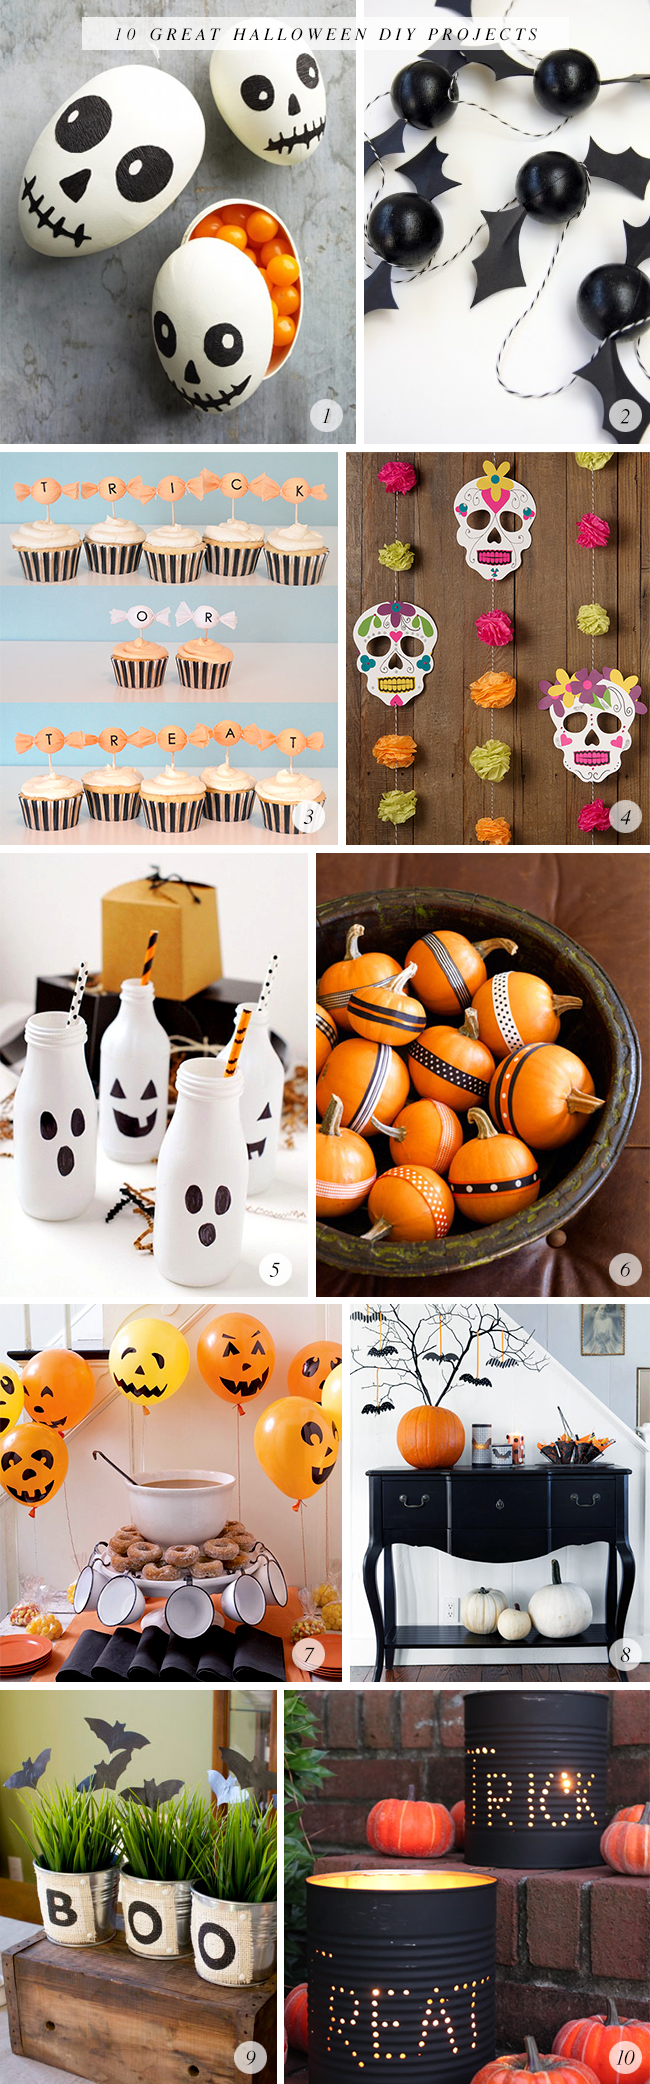 10 Great Halloween DIY Projects via Bubby and Bean